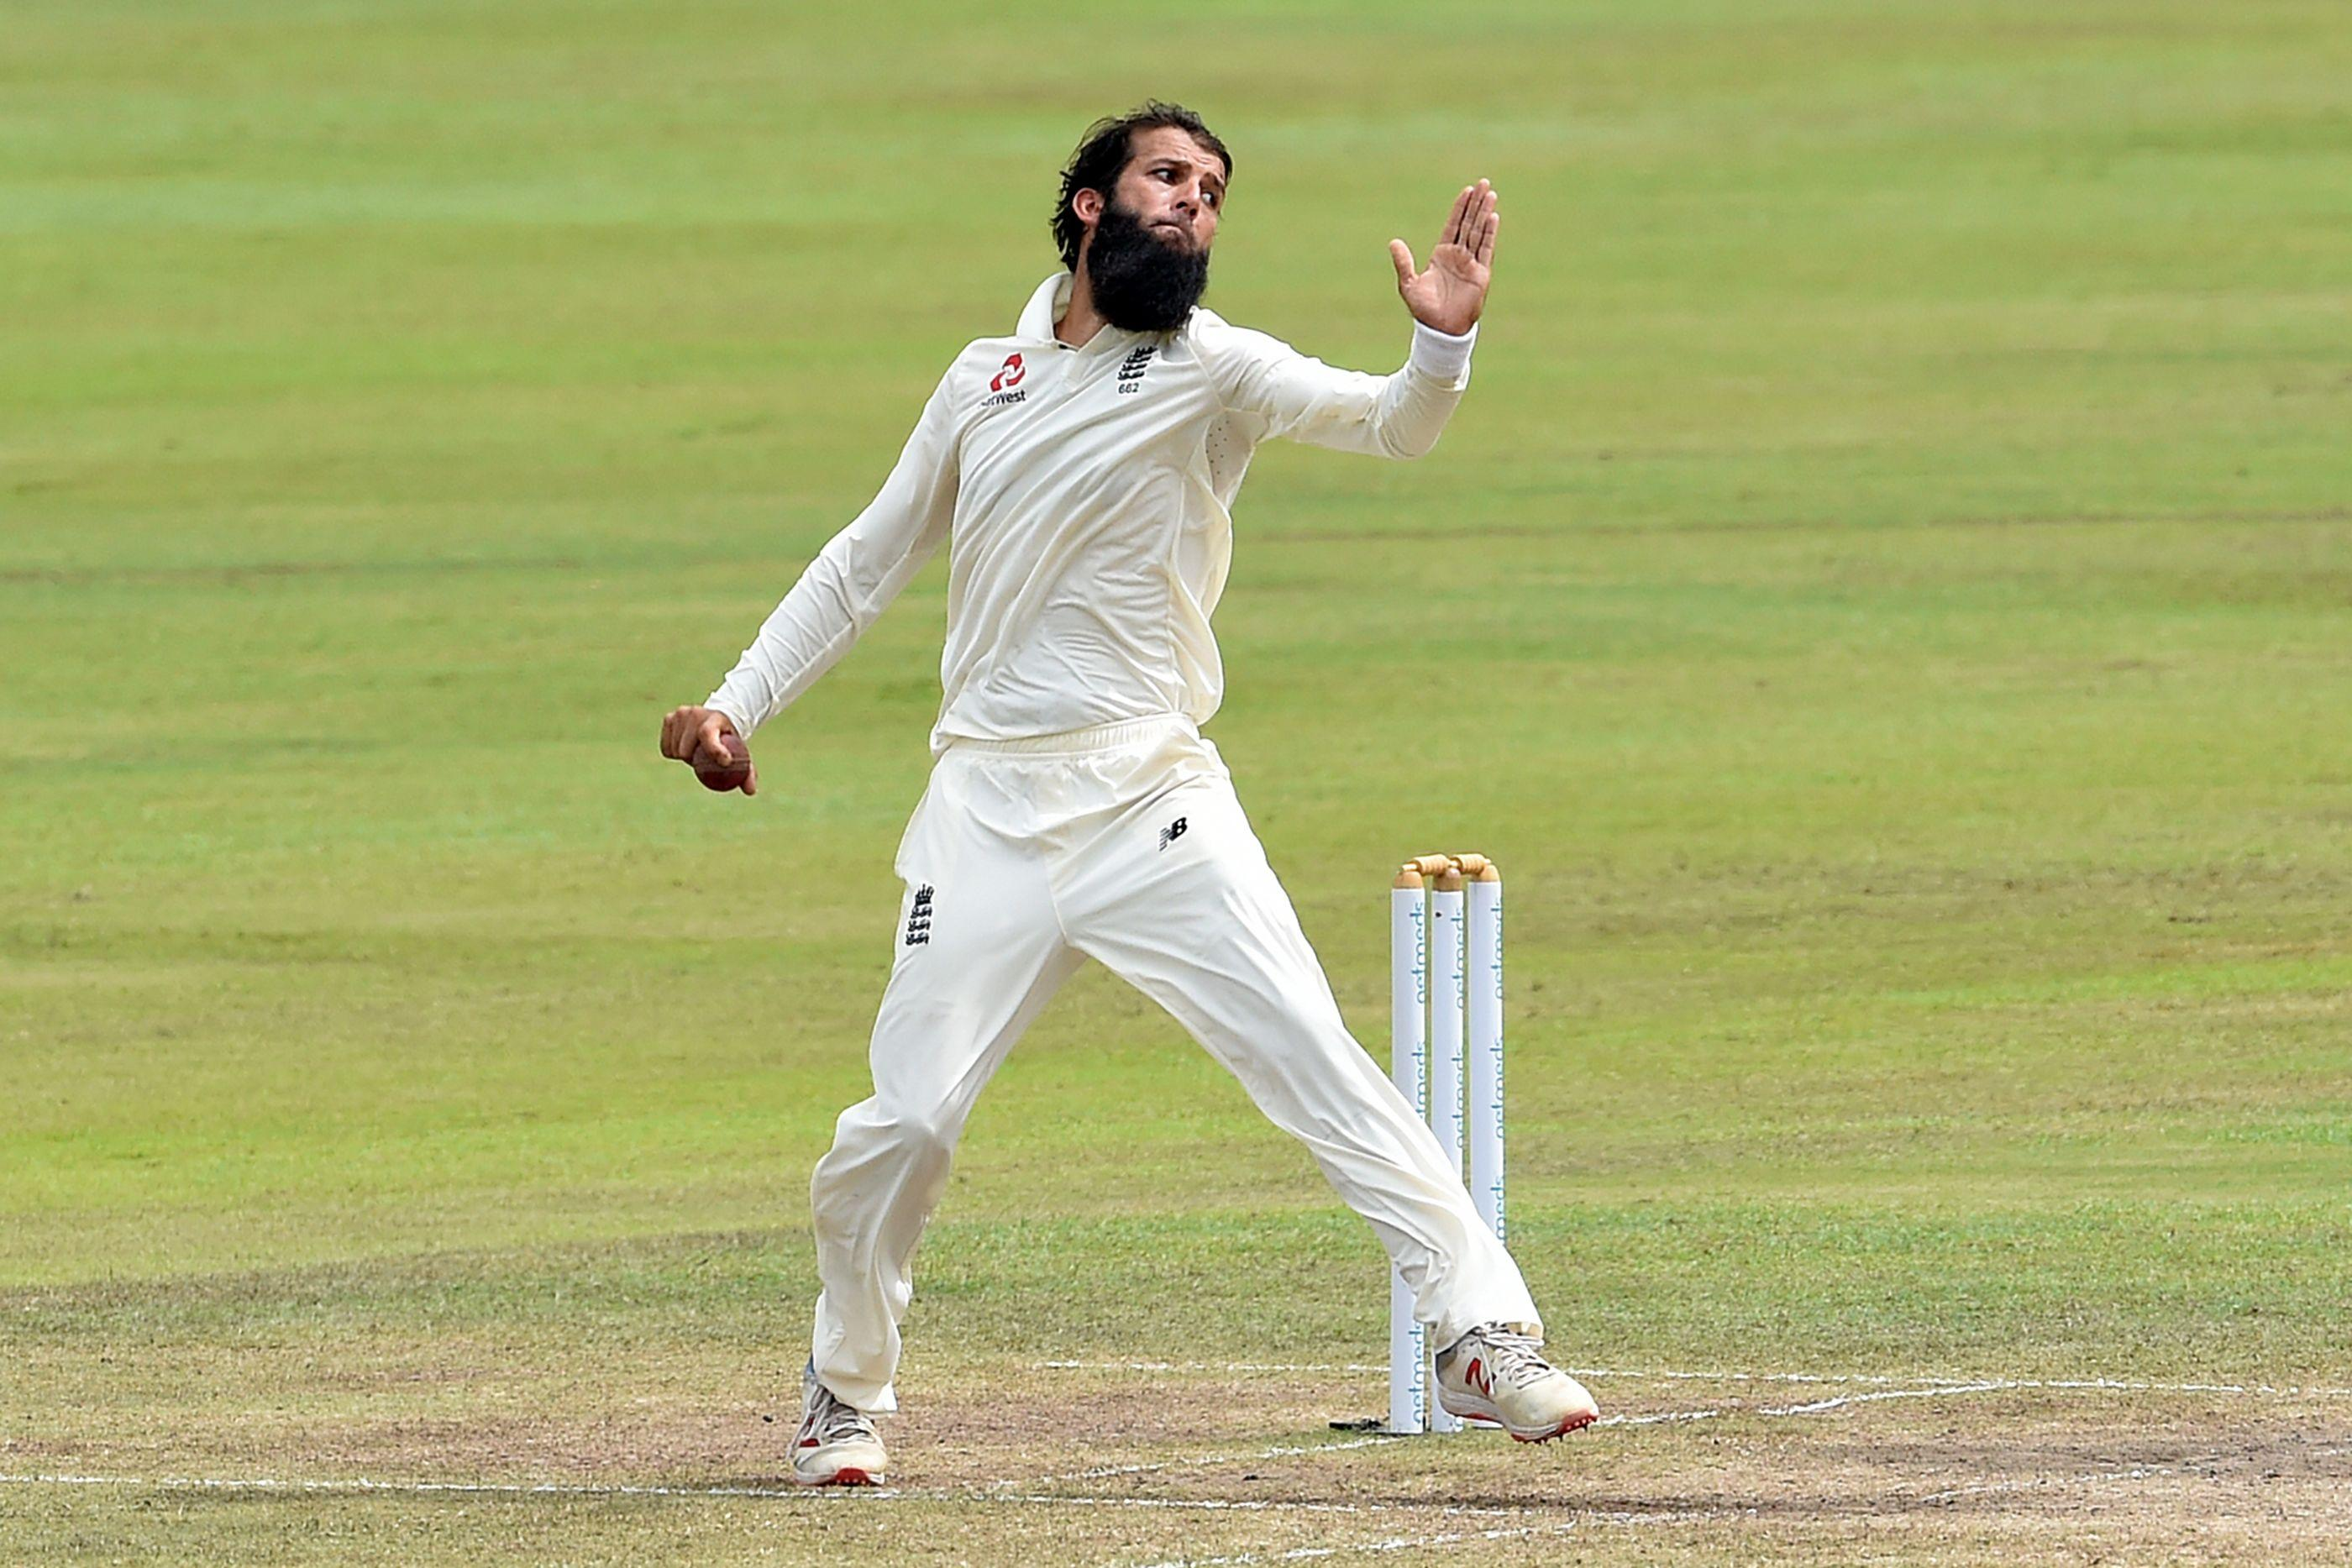 Moeen Ali took two wickets on day five to send England on their way